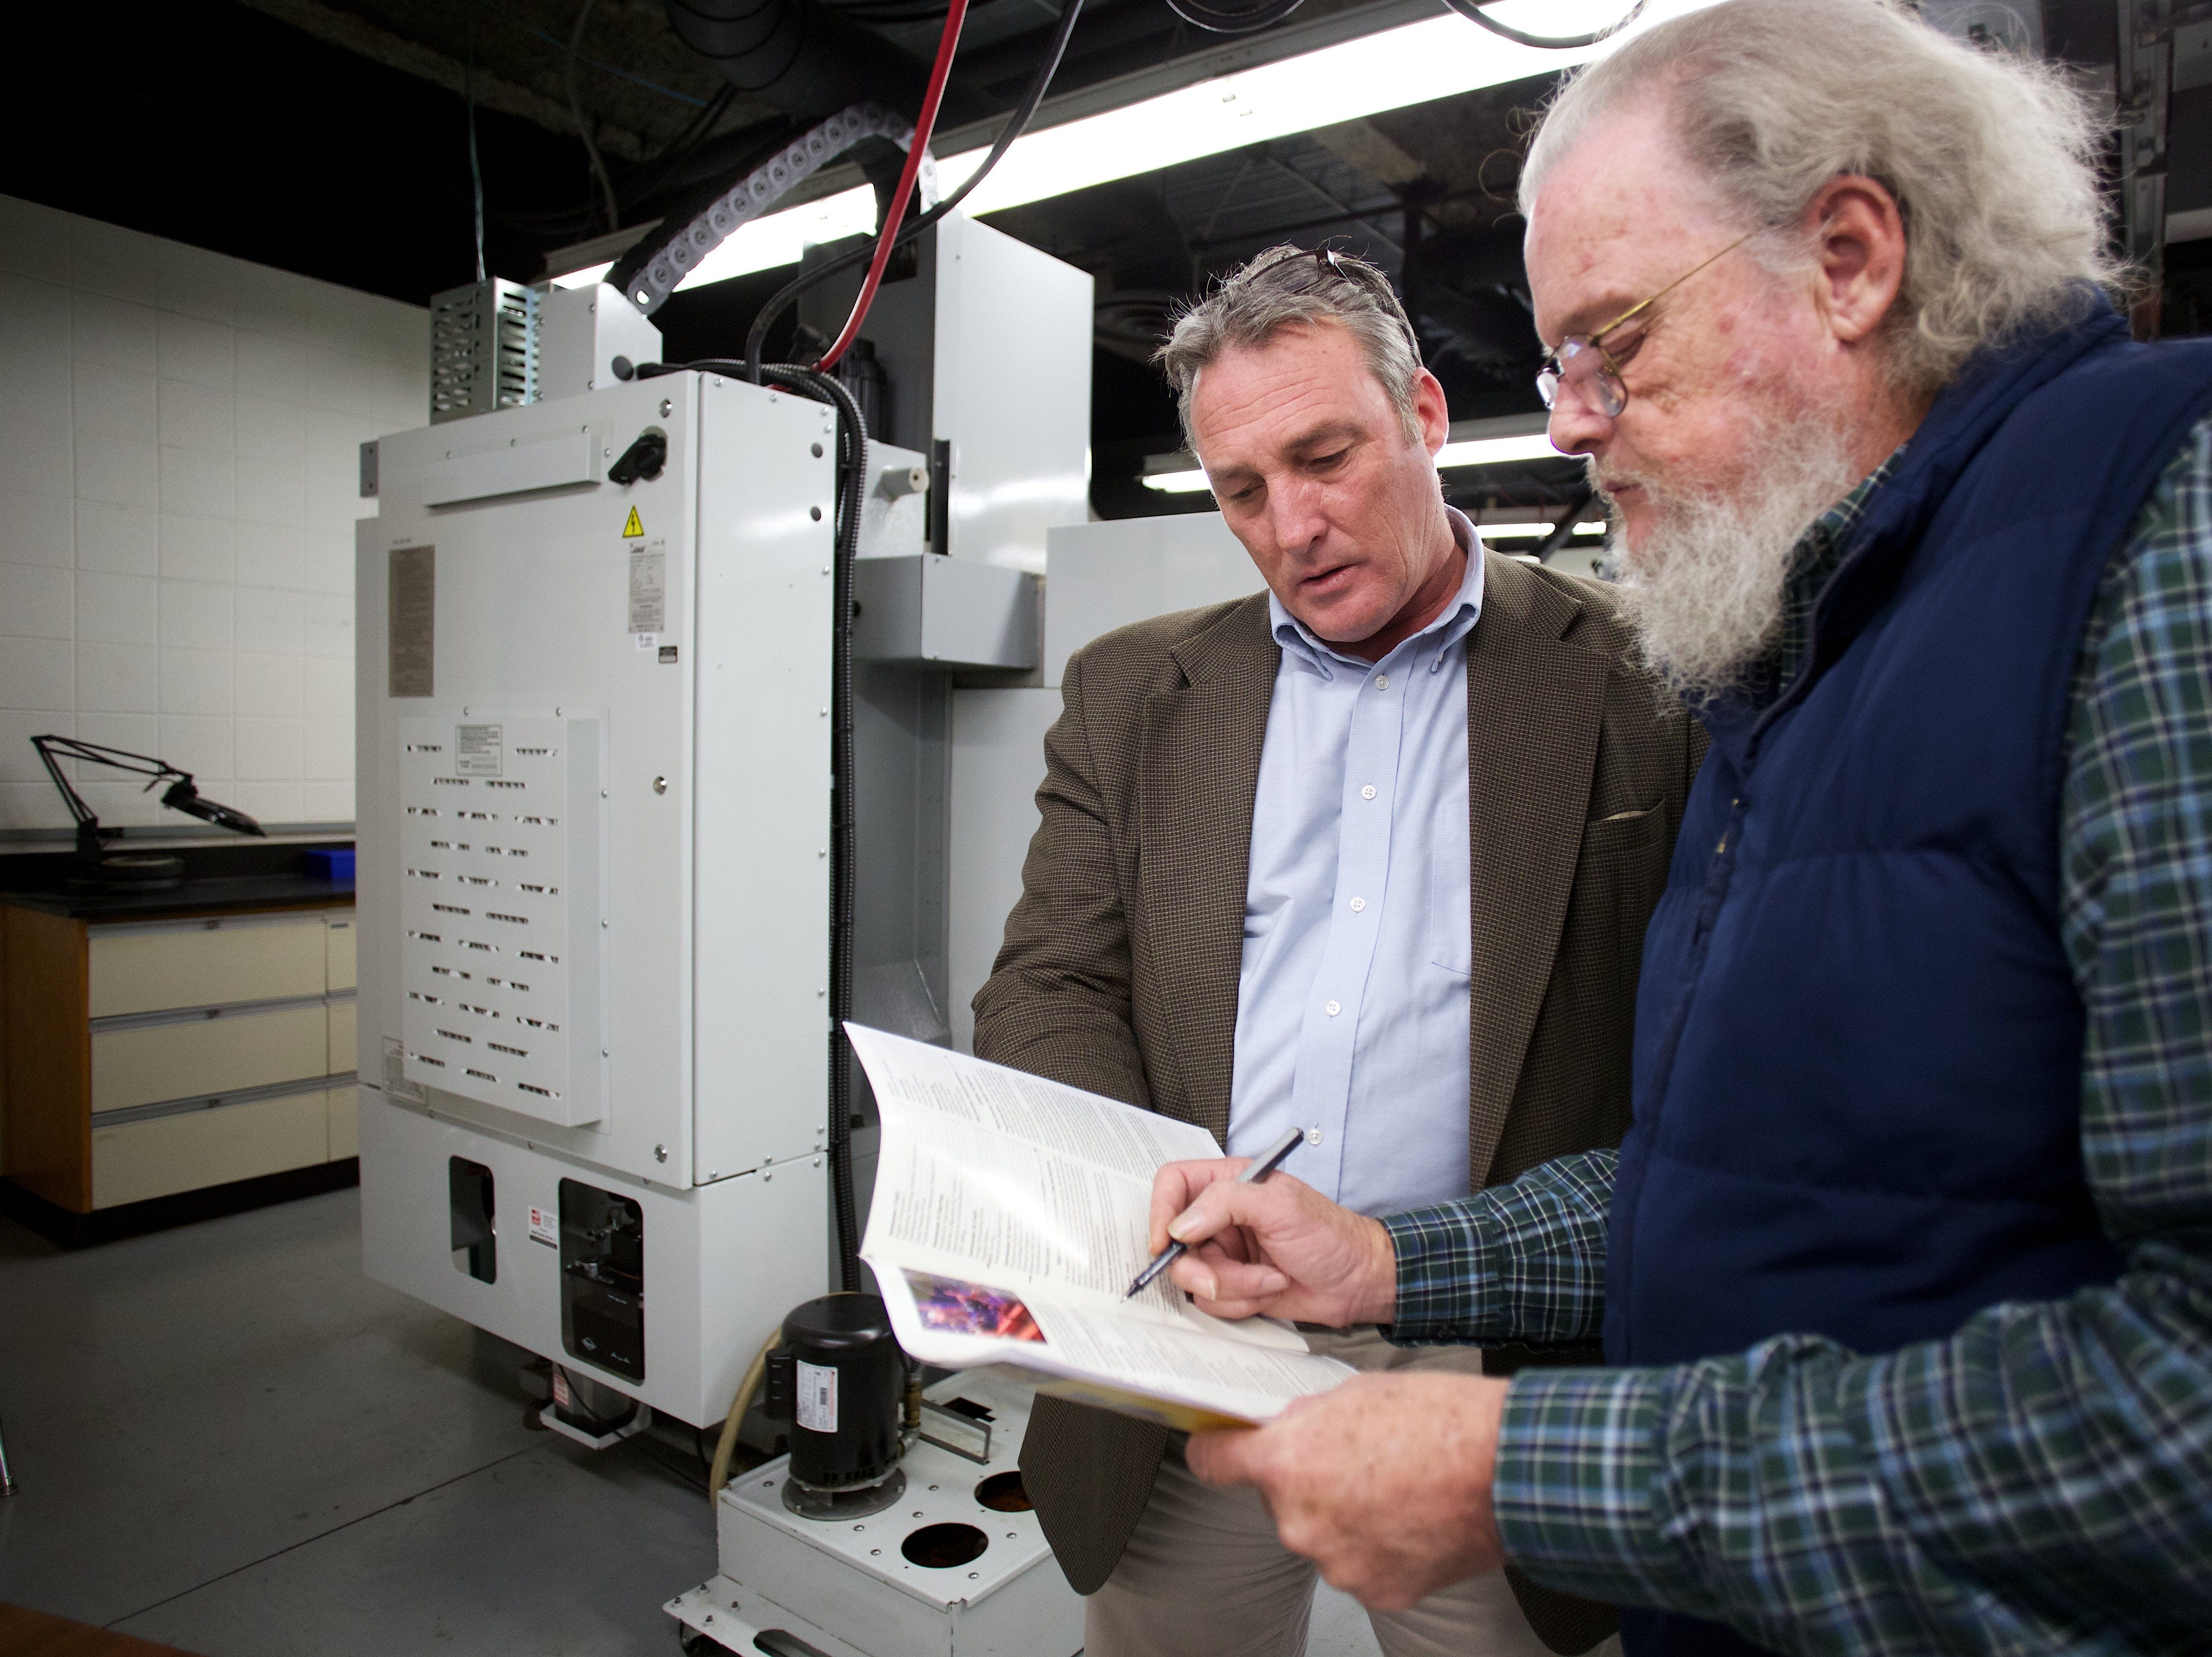 PSCC professor, Pat Riddle, right, shows Pellissippi's Director of Solutions Management, Rick Heath classes that Heath's involvement is needed during a CNC Milling class at PSCC's Hardin Valley Campus on Thursday, November 7, 2013. Heath works in the Business and Community Services department for Pellissippi State Community College.